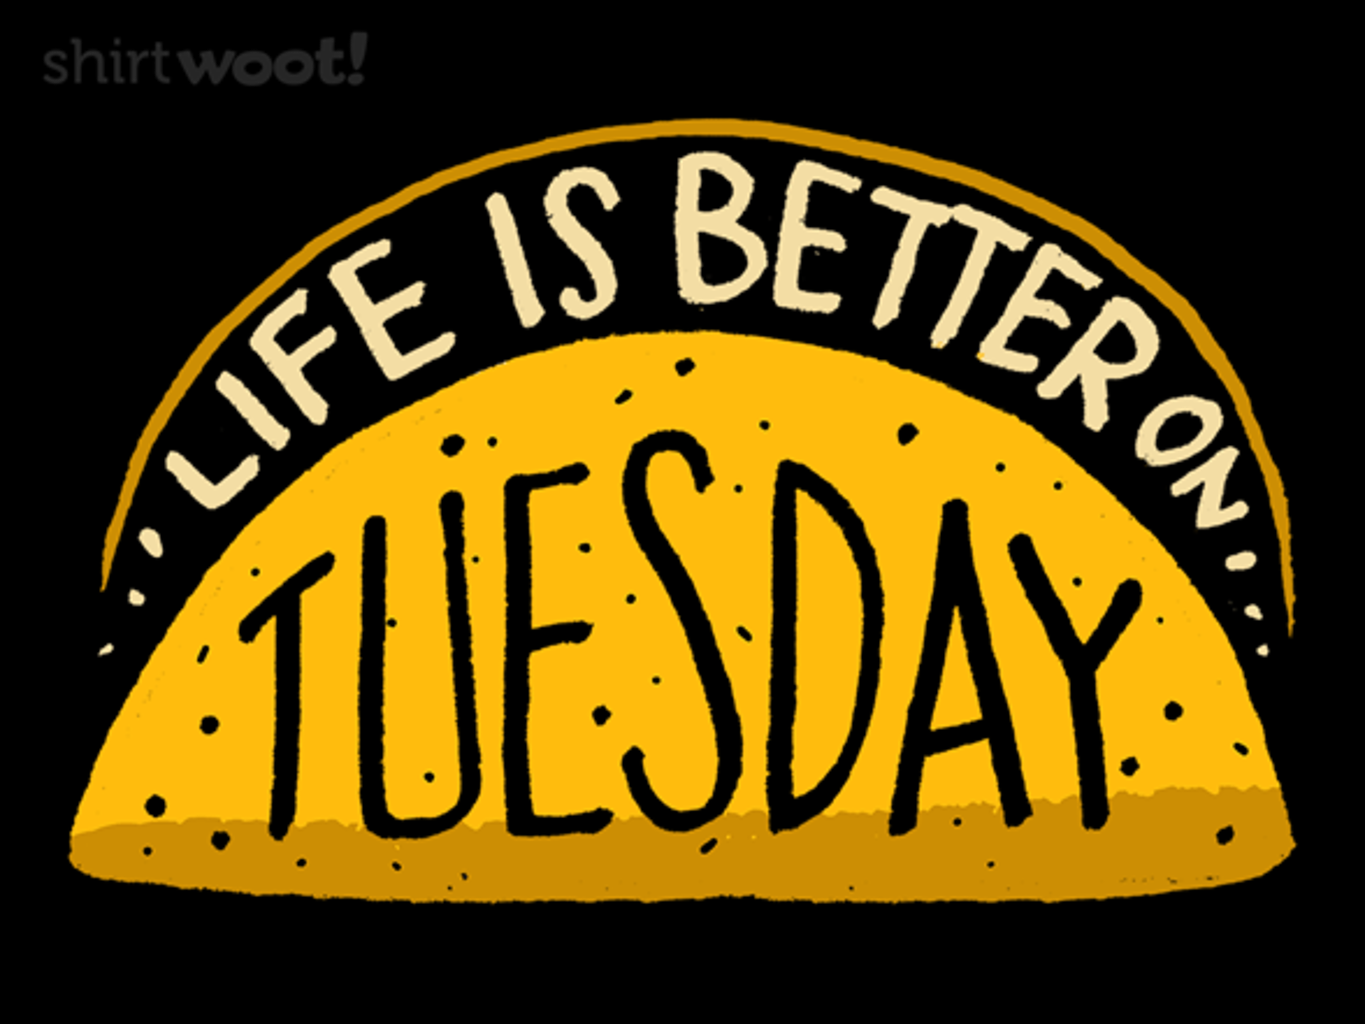 Woot!: Life is Better on Tuesday